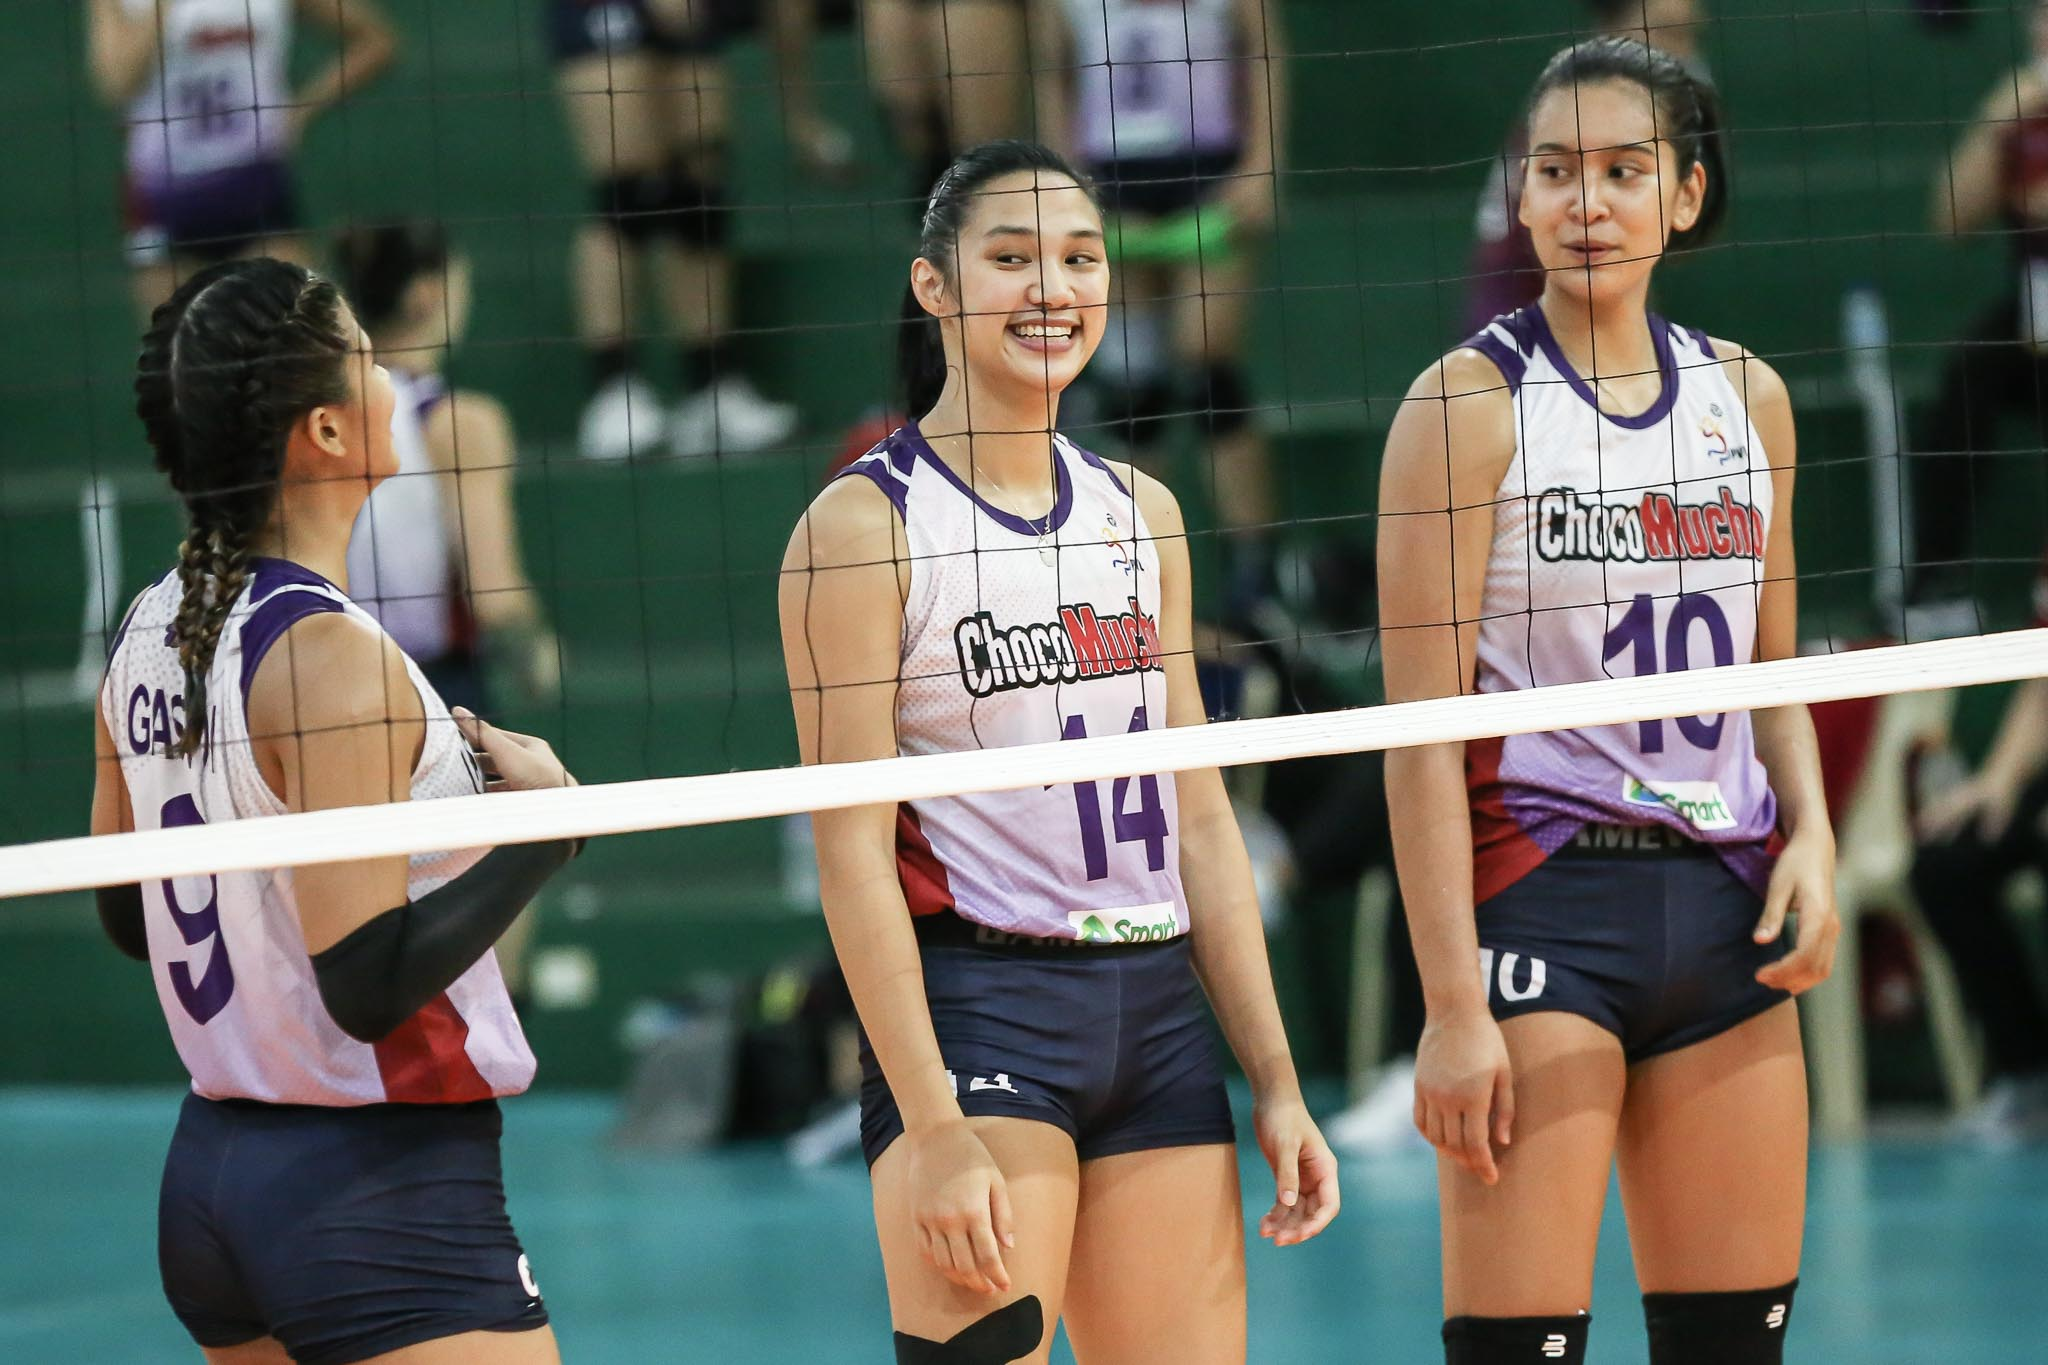 2021-PVL-Open-Perlas-vs-Choco-Mucho-Ponggay-Gaston-x-Bea-de-Leon-x-Kat-Tolentino Ponggay Gaston embraces role of 'Energizer Bunny' for Choco Mucho News PVL Volleyball  - philippine sports news